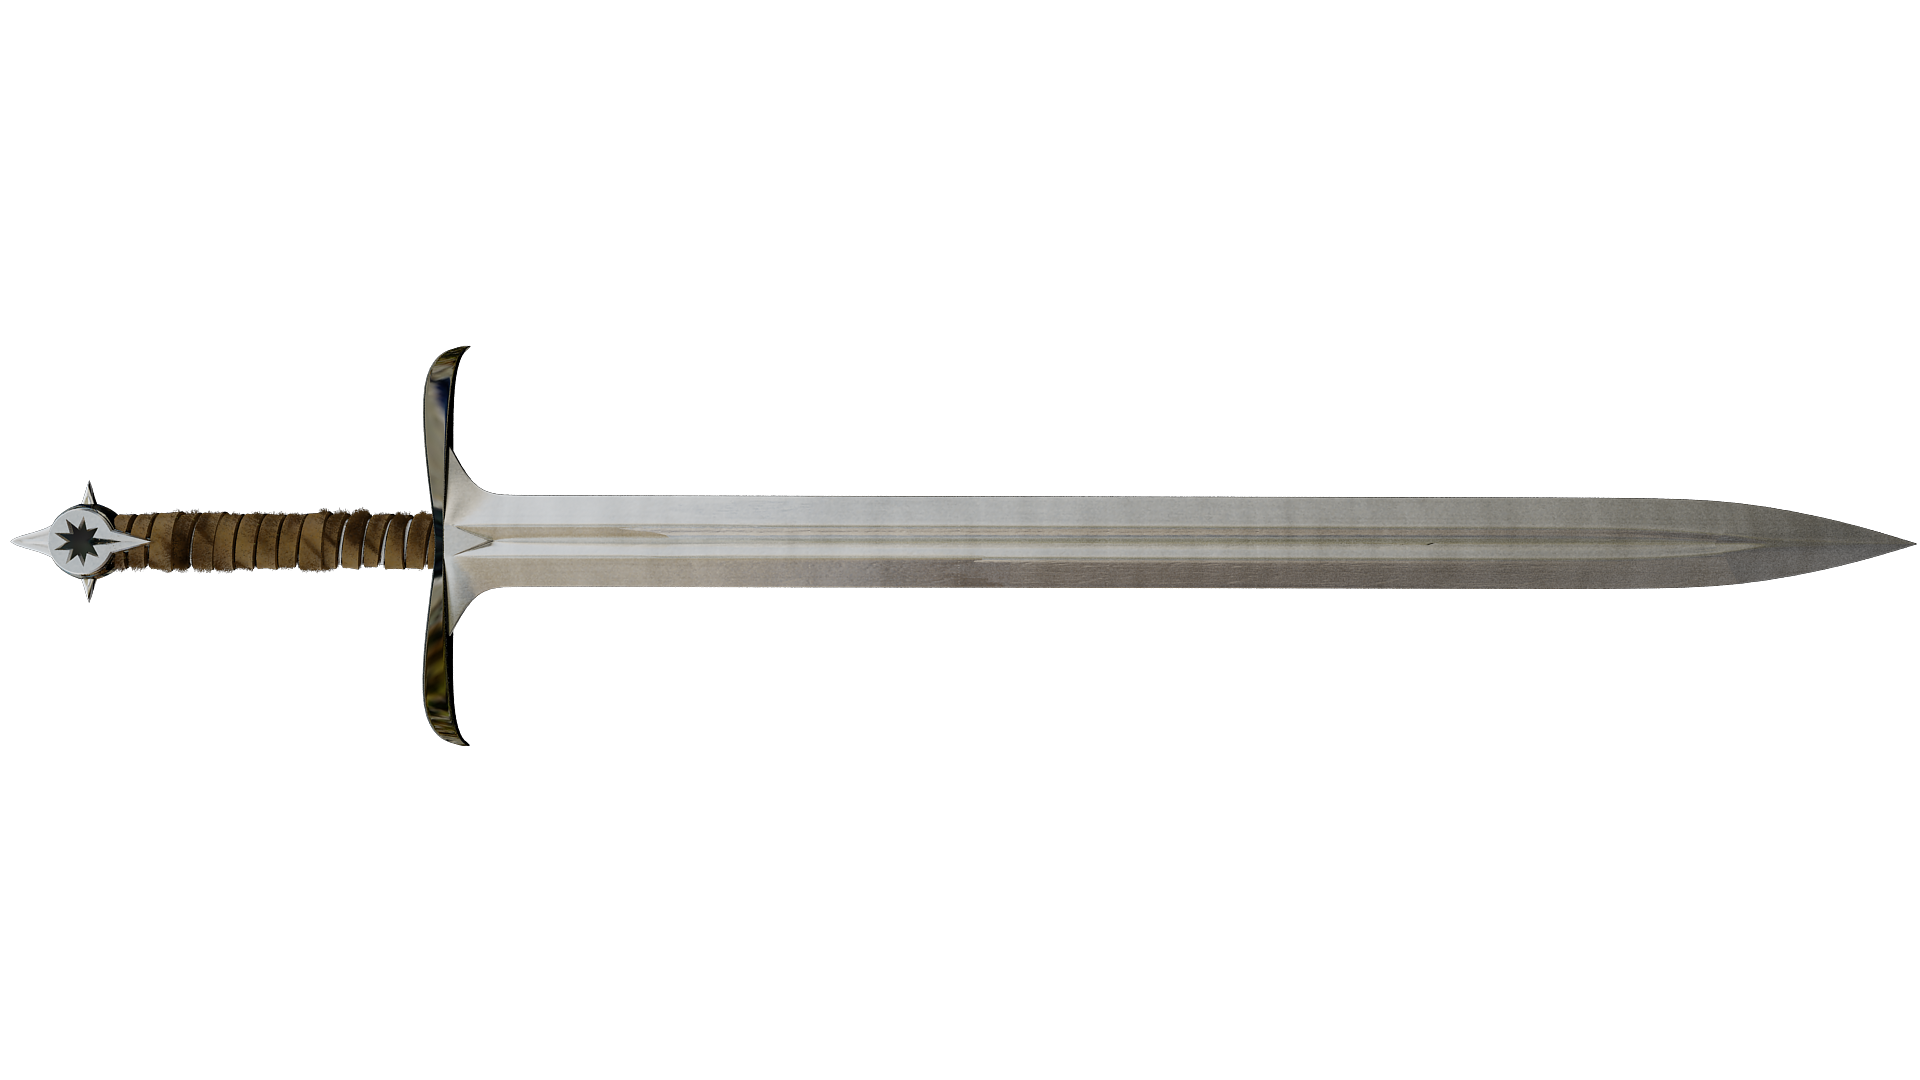 Topic des absences - Page 4 Sword-hd-png-sword-png-image-1920